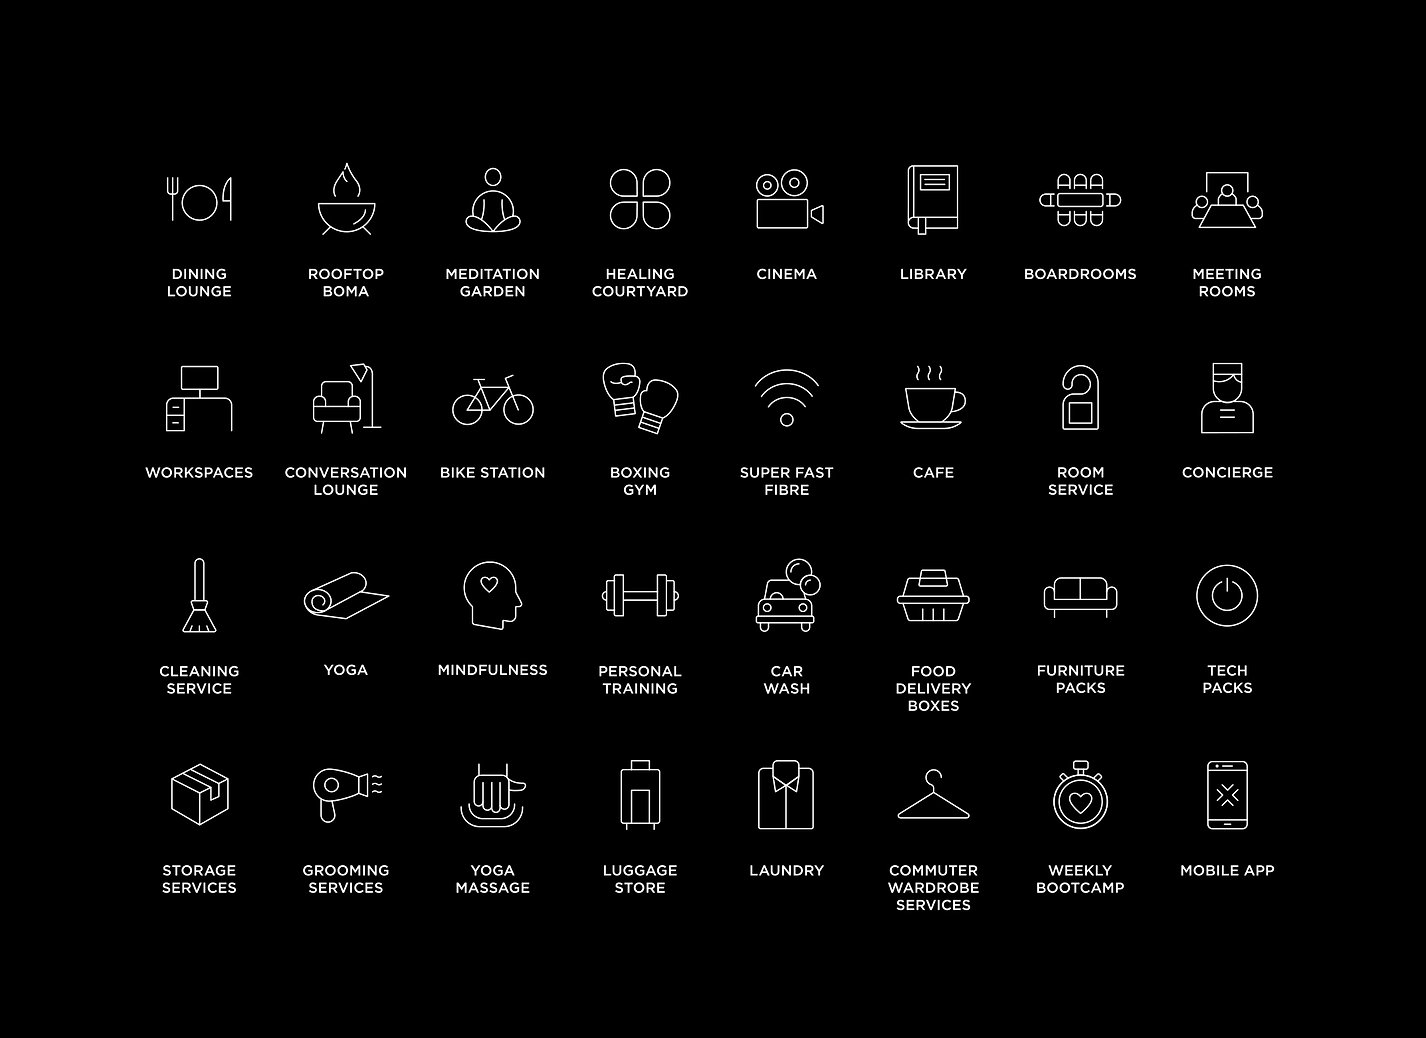 Blackbrick Facilities & services icons.j